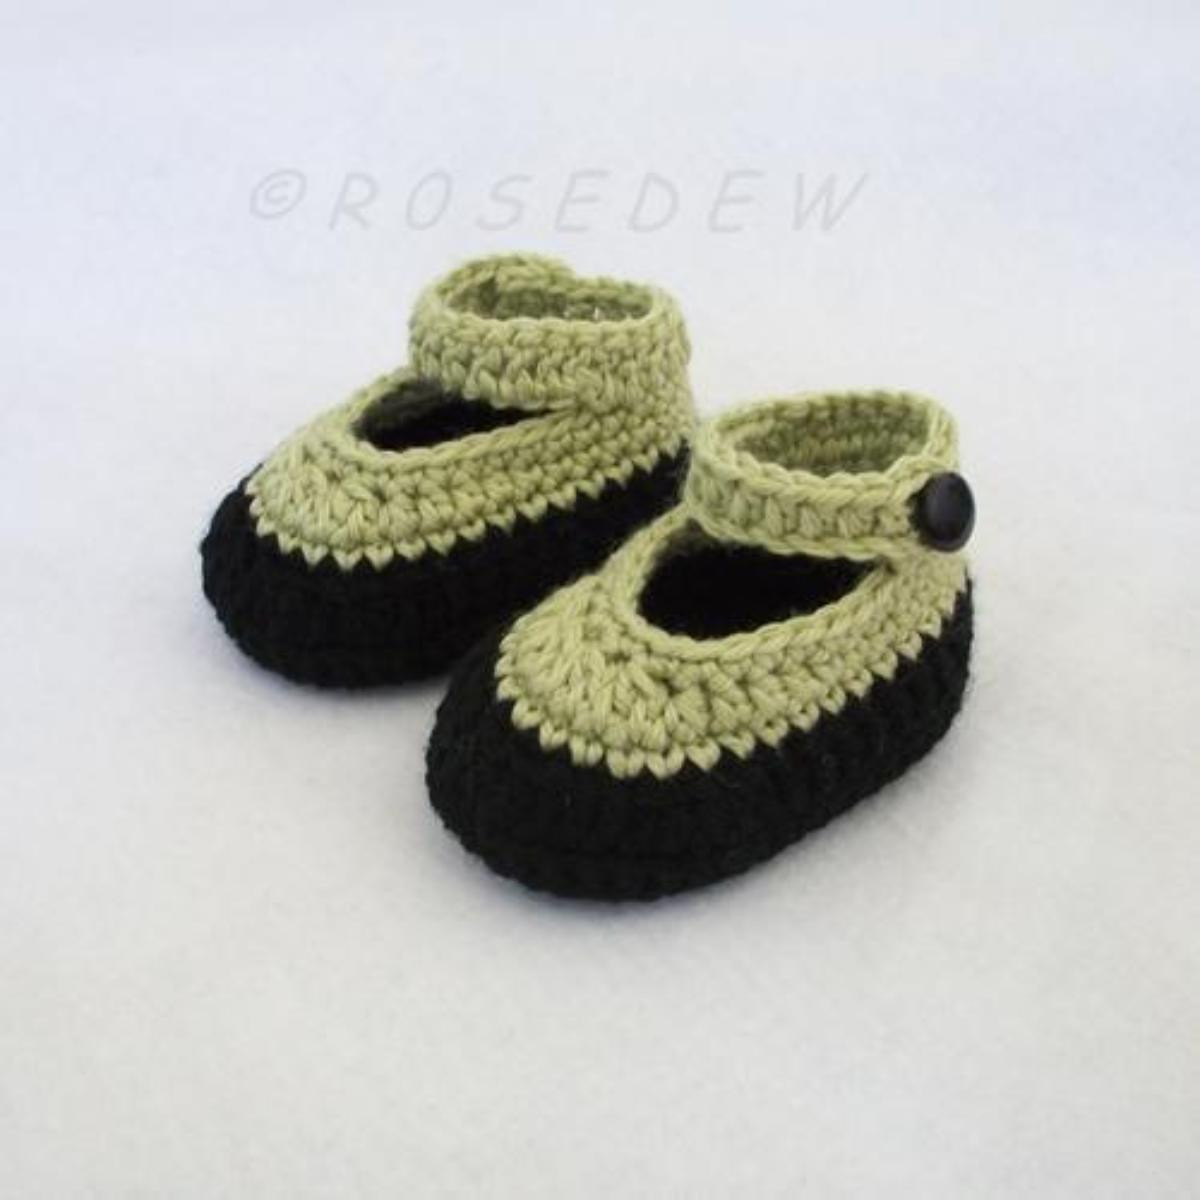 Free Crochet Baby Booties Luxury Crochet Baby Booties Patterns for Sweet Little Feet Of Wonderful 49 Photos Free Crochet Baby Booties